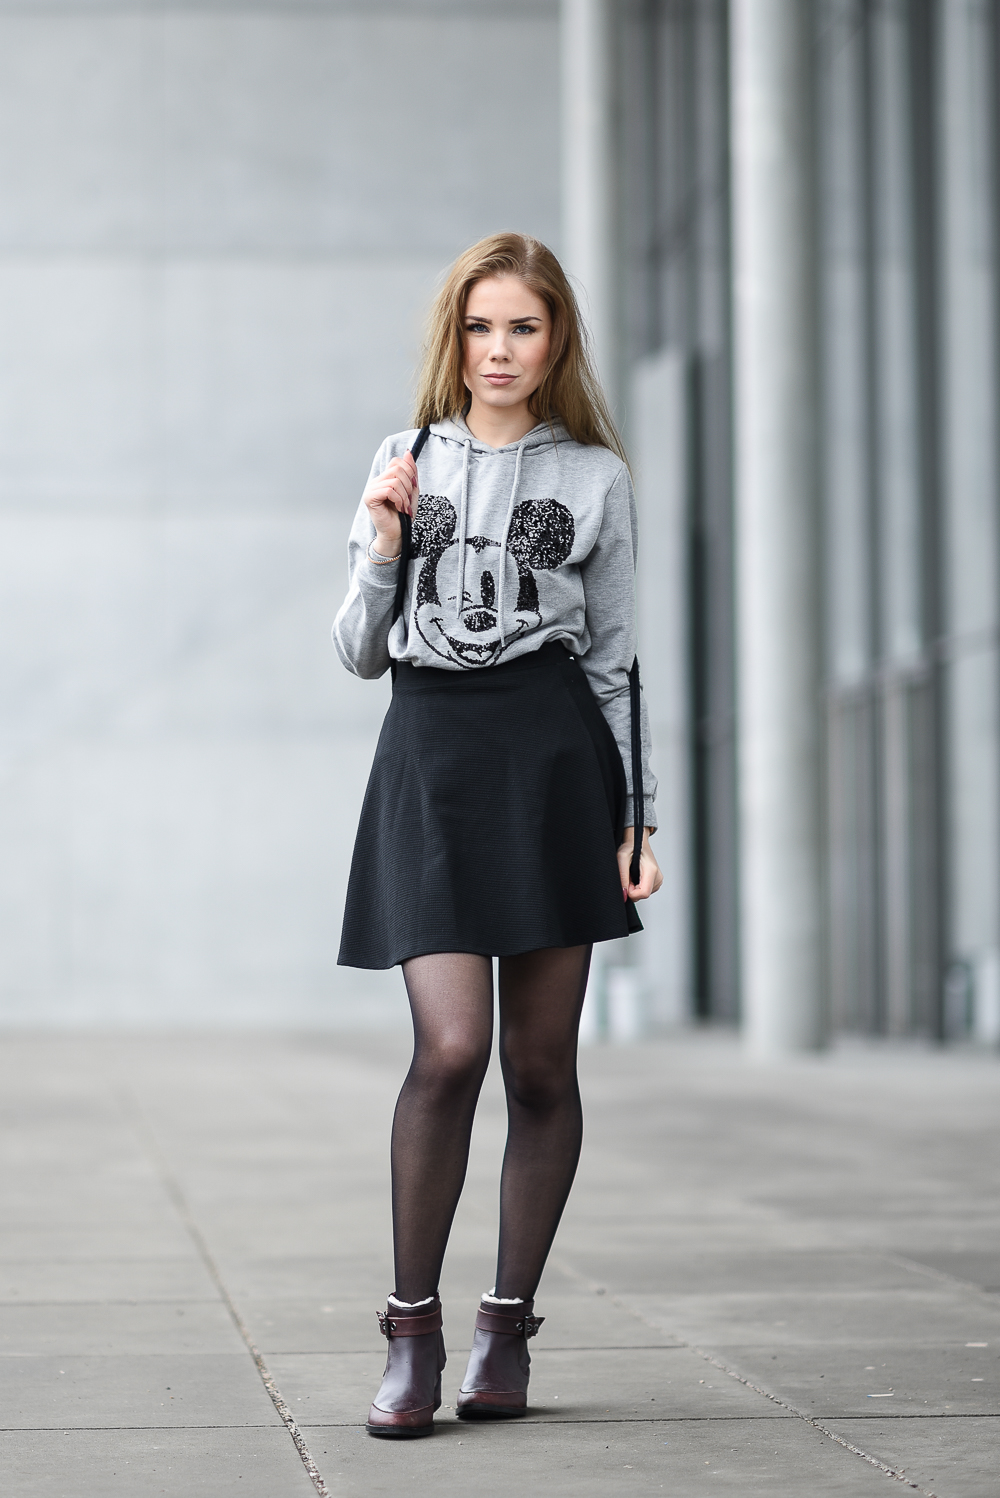 Mickey Mouse Sweater-Pullover-Pulli-Kleidung-Comic Print-schwarzer Skaterrock-dunkelrote Chelsea Boots EMU